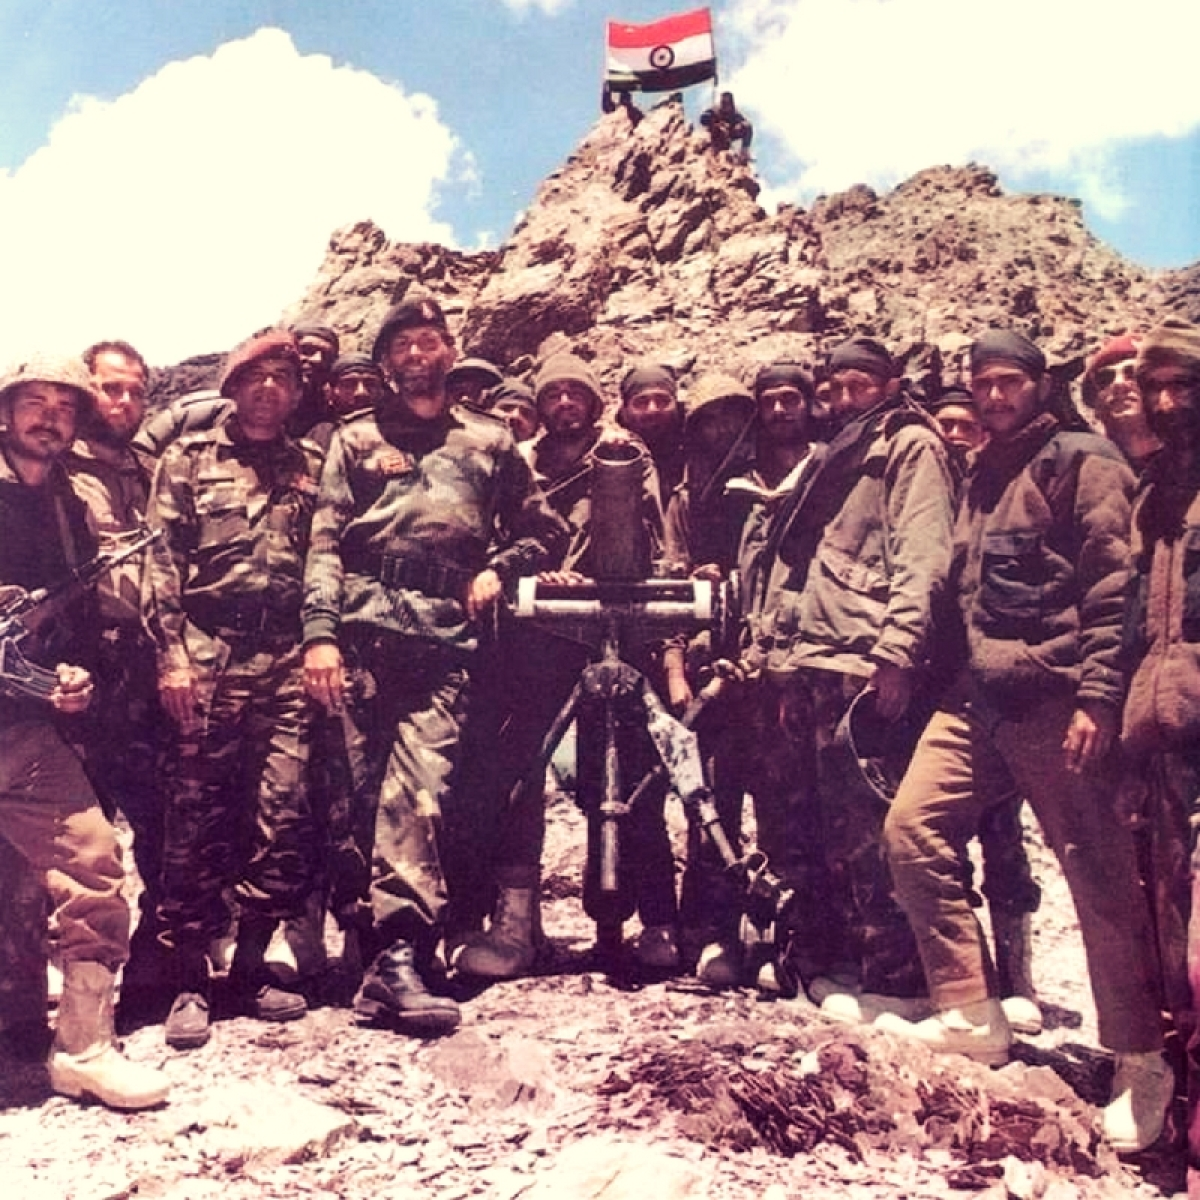 We Asked For Bullets, Not Bread: The Story of a Kargil War